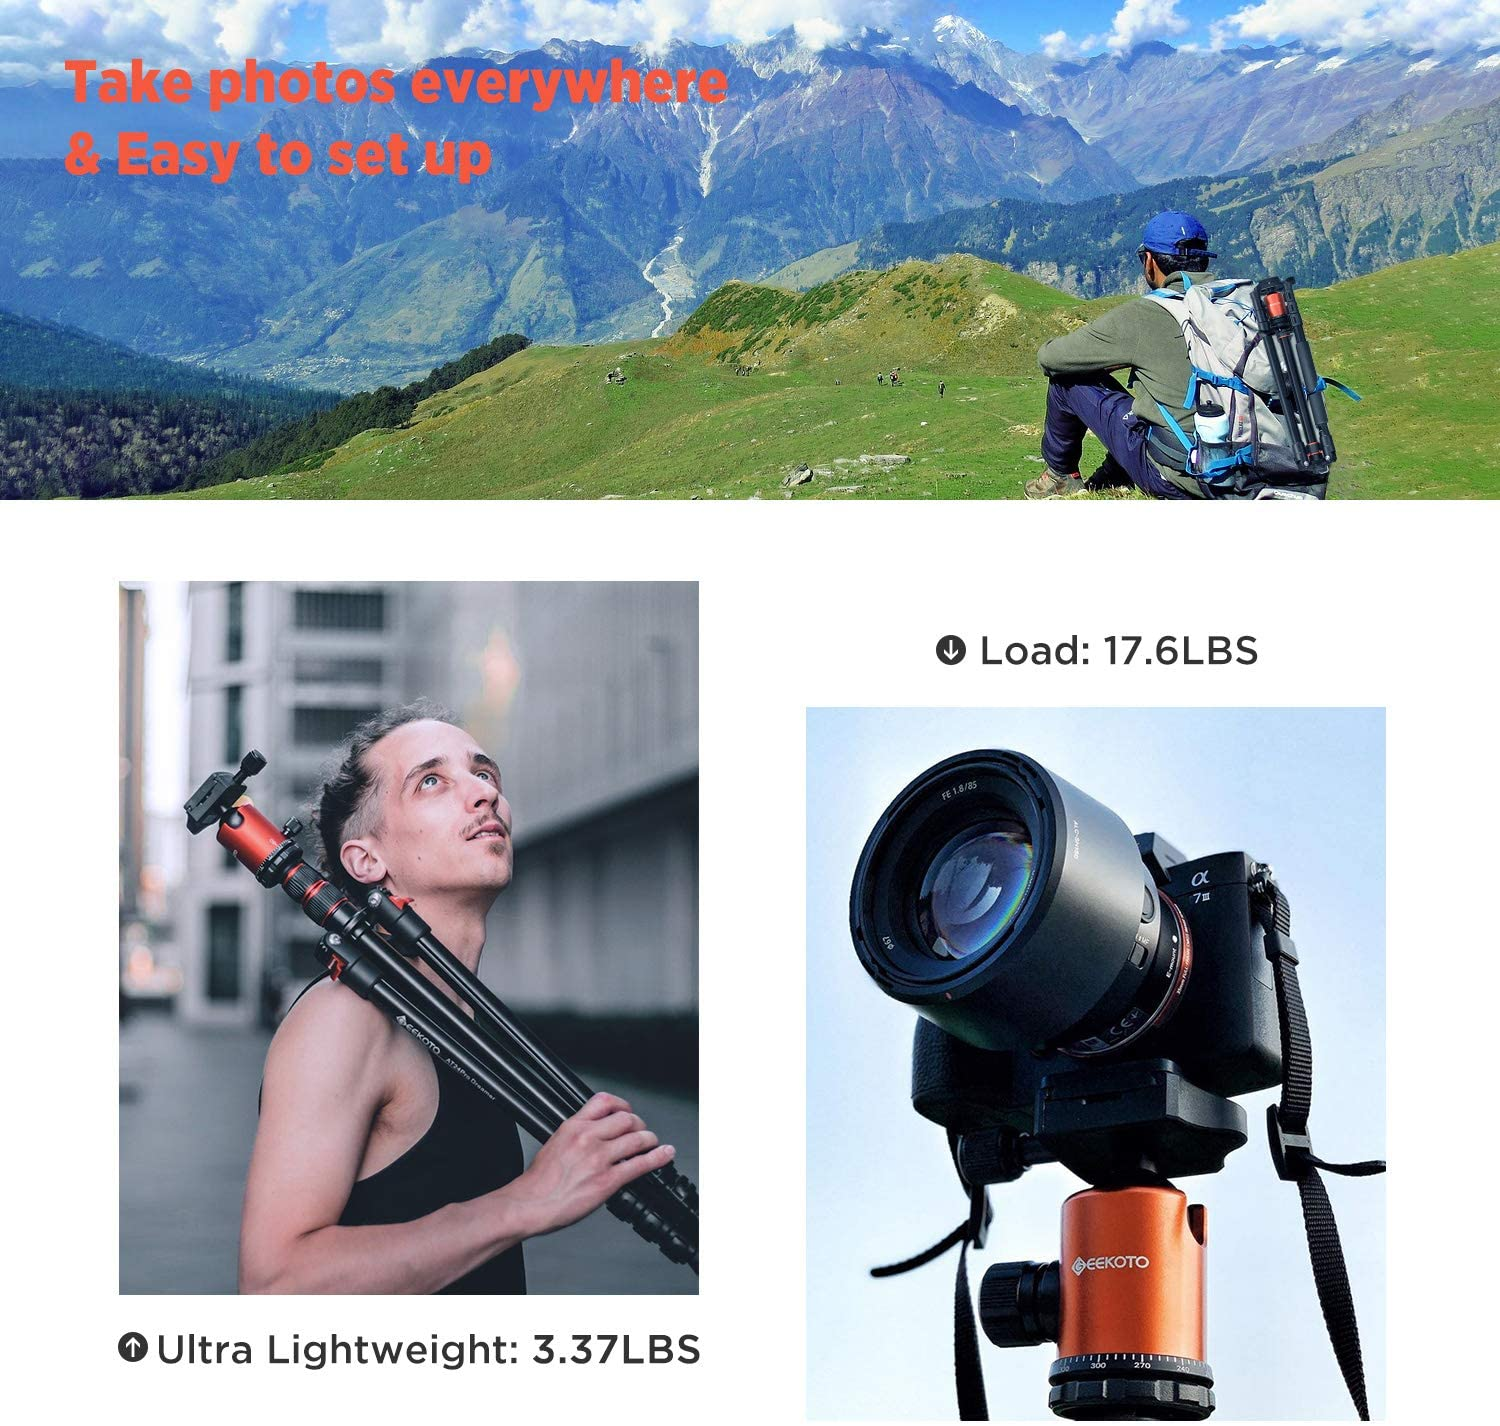 GEEKOTO 77'' Tripod, Camera Tripod for DSLR, Compact Aluminum Tripod with 360 Degree Ball Head and 8kgs Load for Travel and Work : Camera & Photo